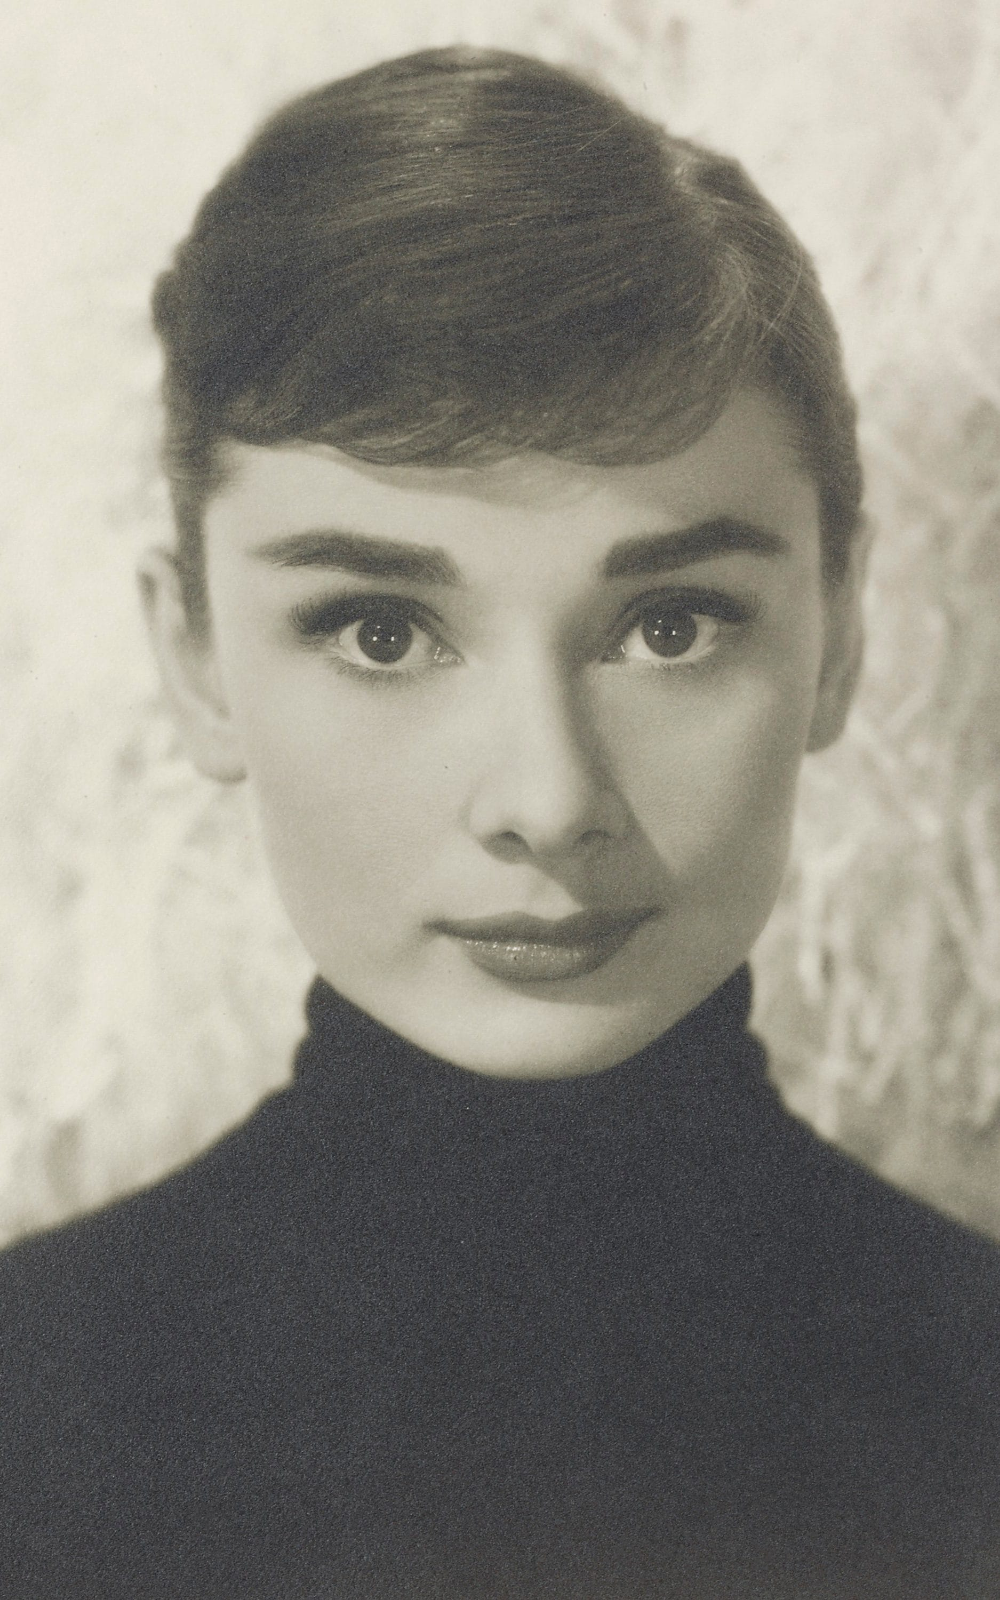 51 incredible actresses from Hollywood's Golden Age #hollywoodgoldenage Audrey Hepburn | 51 incredible actresses from Hollywood's Golden Age  - Film #hollywoodgoldenage 51 incredible actresses from Hollywood's Golden Age #hollywoodgoldenage Audrey Hepburn | 51 incredible actresses from Hollywood's Golden Age  - Film #hollywoodgoldenage